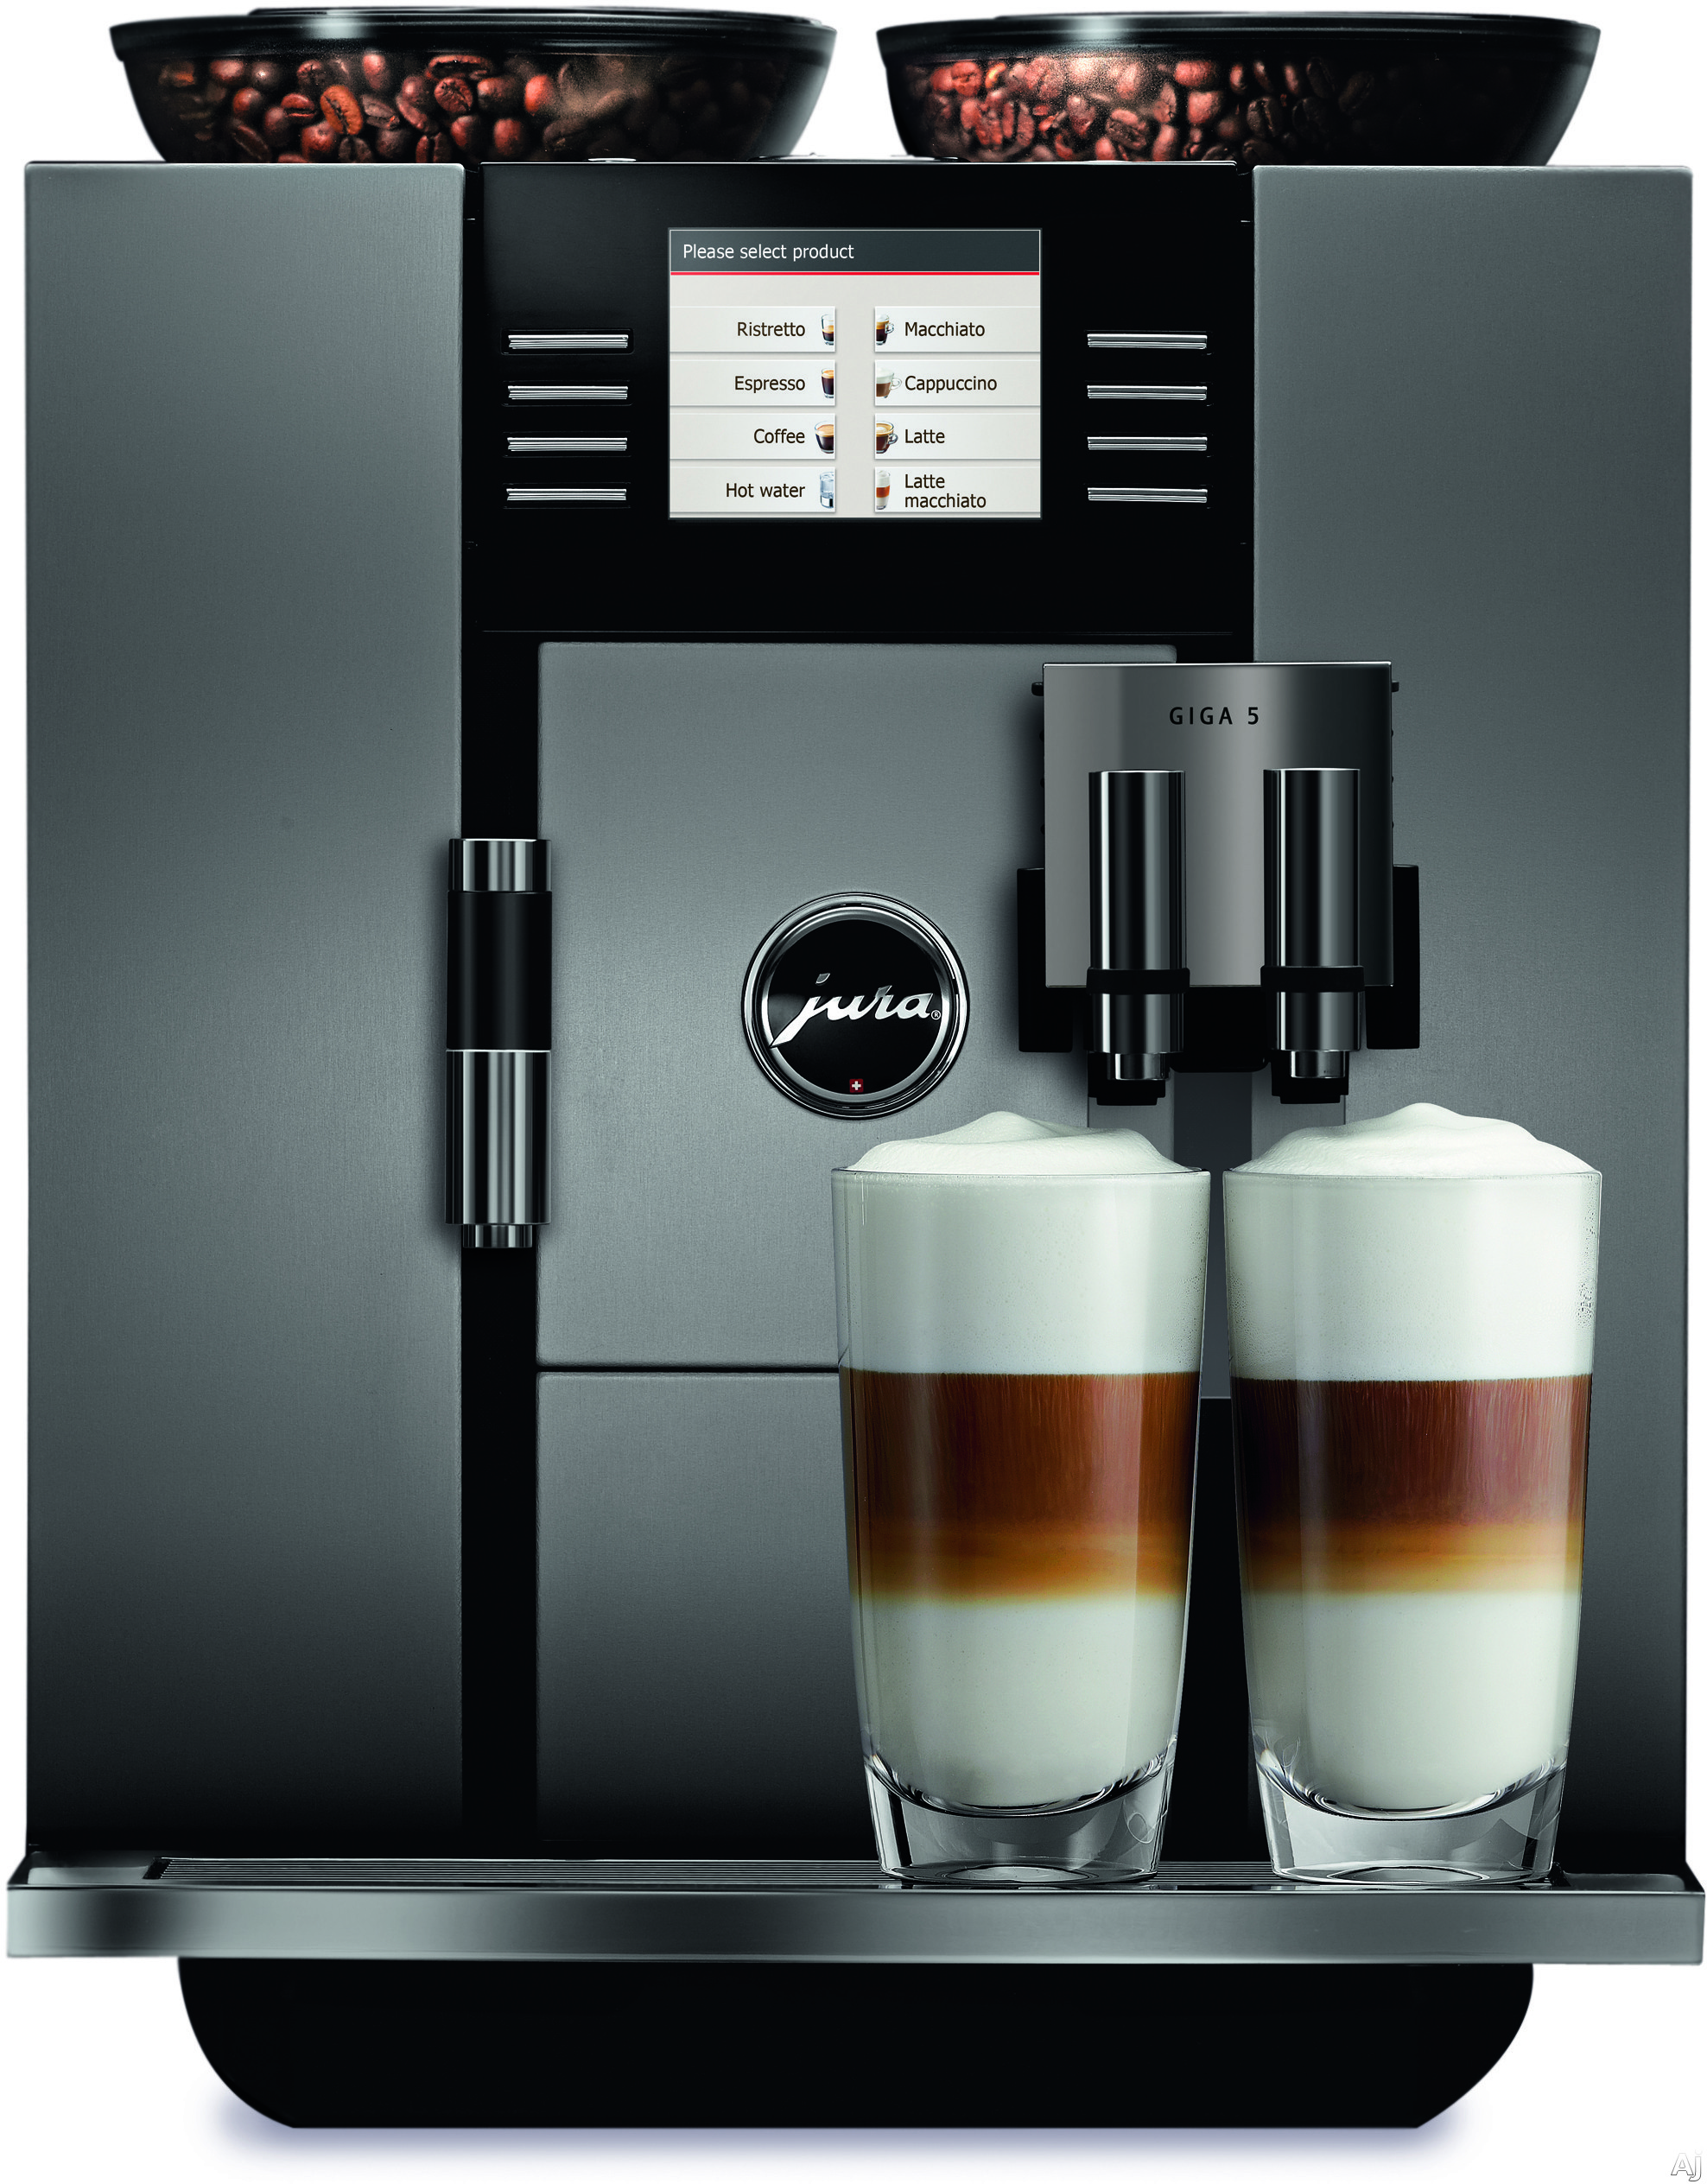 Jura 13623 Giga 5 Aluminum Automatic Coffee Machine with Pre-Brew Aroma System, 19 Programmable Presets, Two Thermoblock Heating Systems, Two Grinders, Milk Frothing System, Integrated Cleaning System, Hot Water Function and 15 Bar Pump 13623